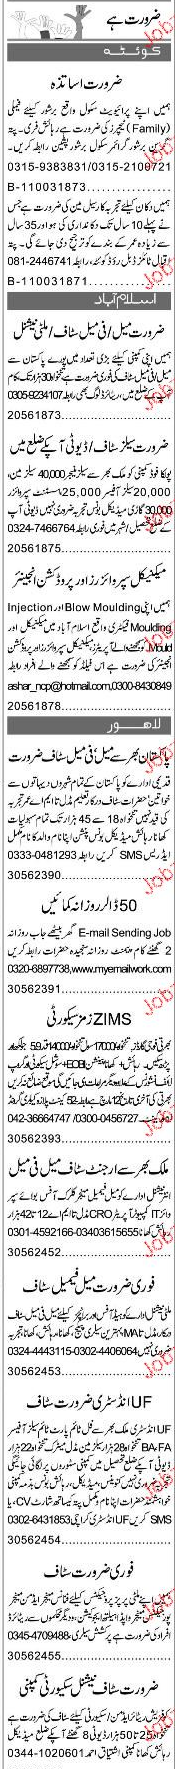 Production Engineers, Mechanical Supervisors Job Opportunity